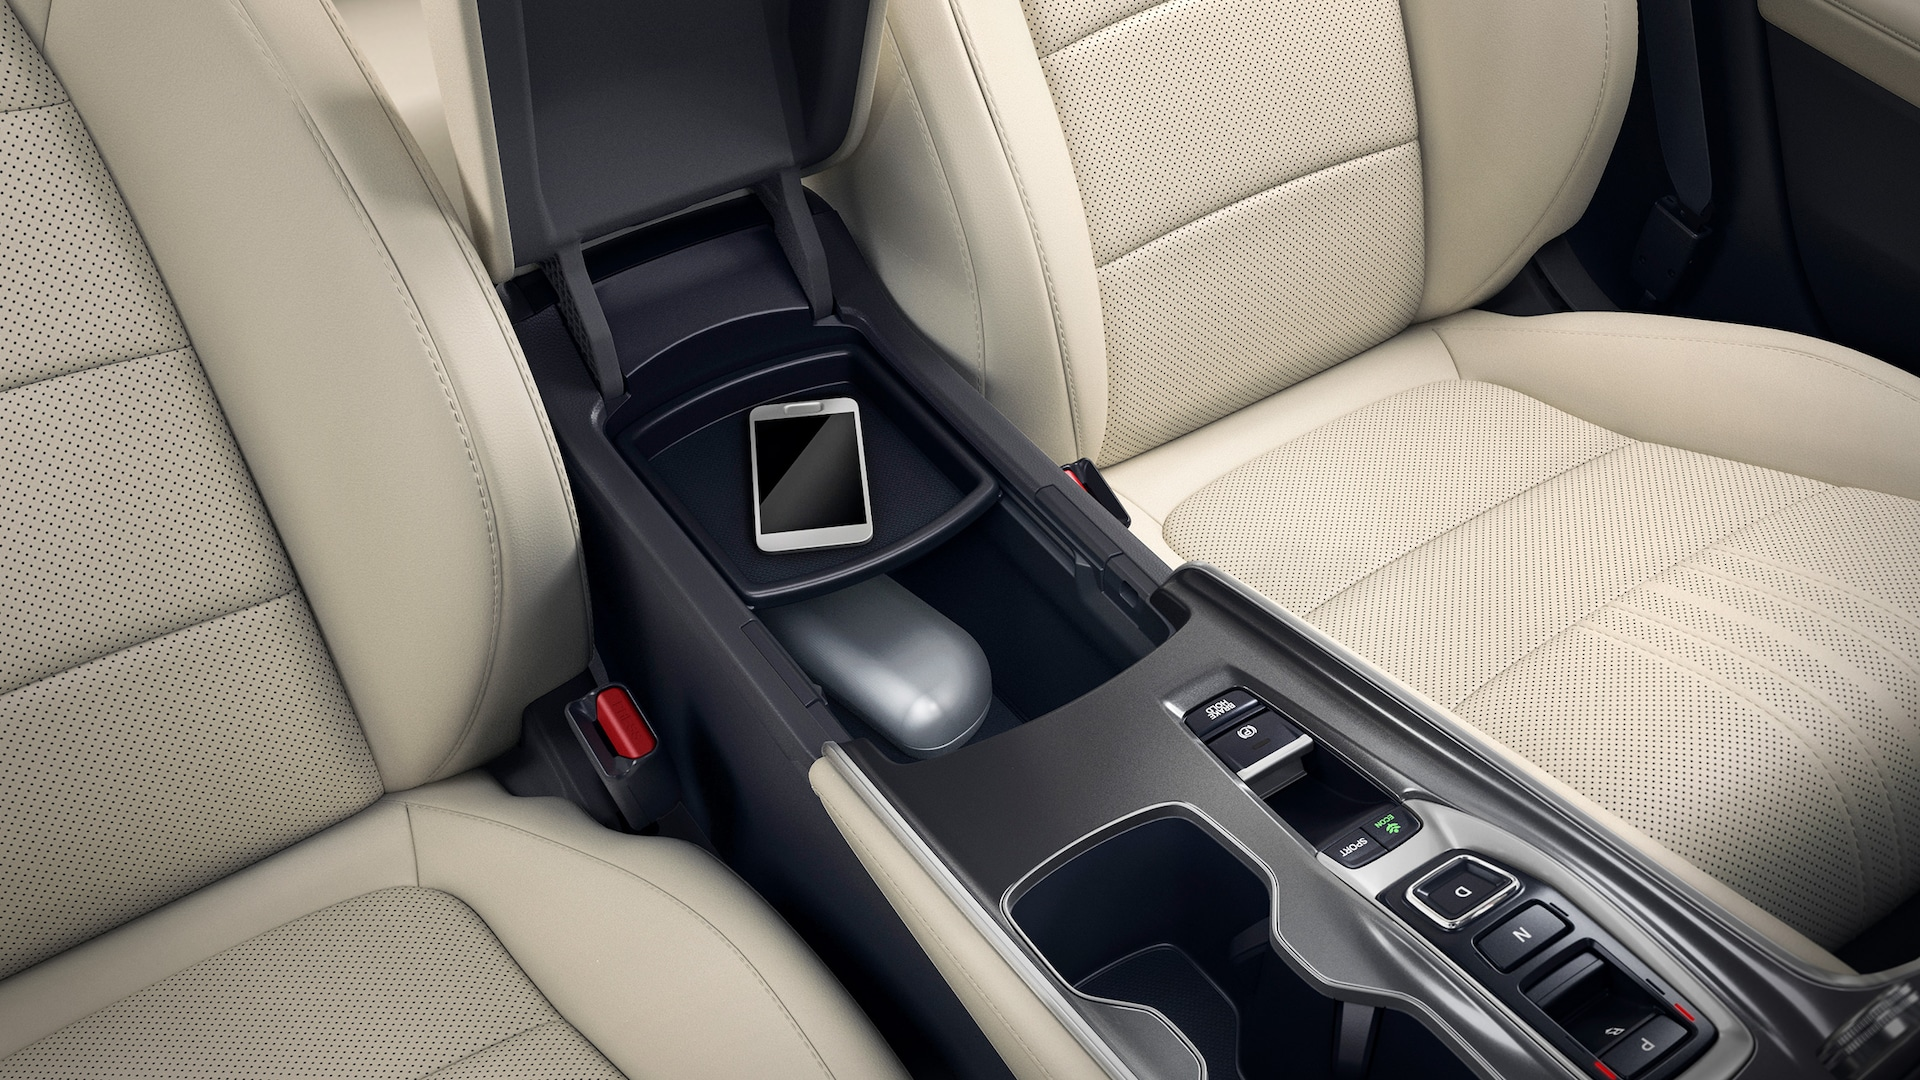 Center console storage compartment detail in the 2020 Honda Accord Touring 2.0T.